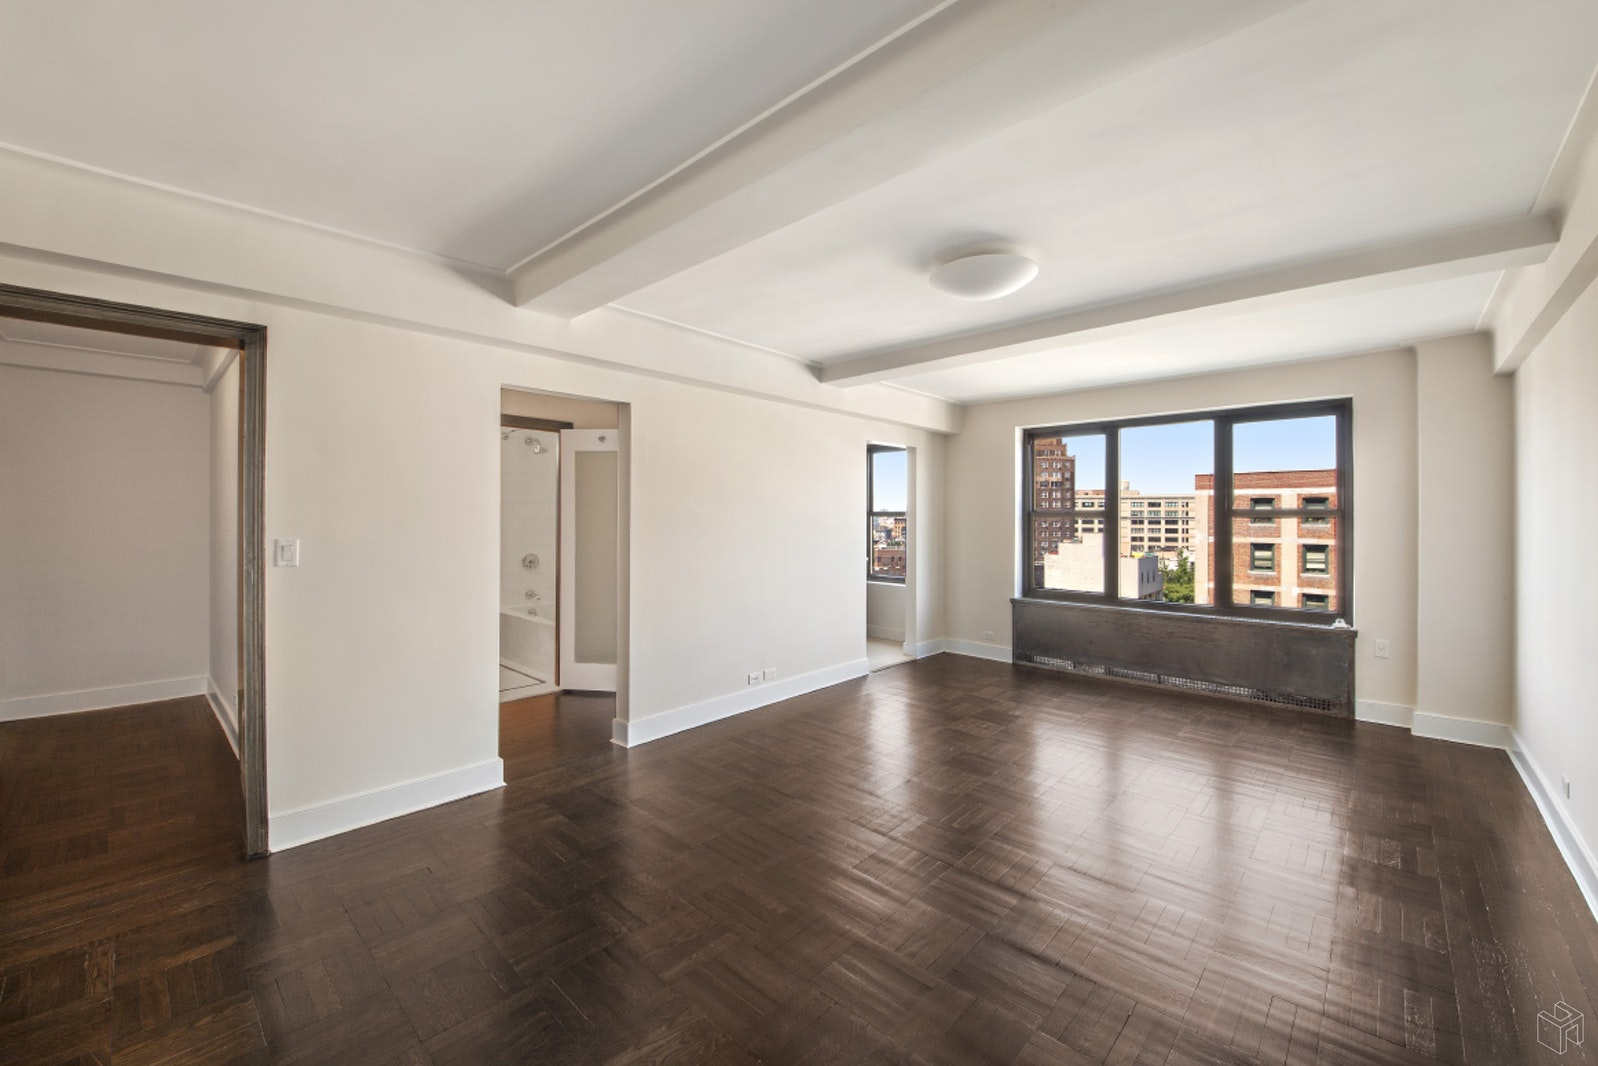 56 Seventh Avenue, West Village, NYC, 10011, $3,650, Rented Property, Halstead Real Estate, Photo 1